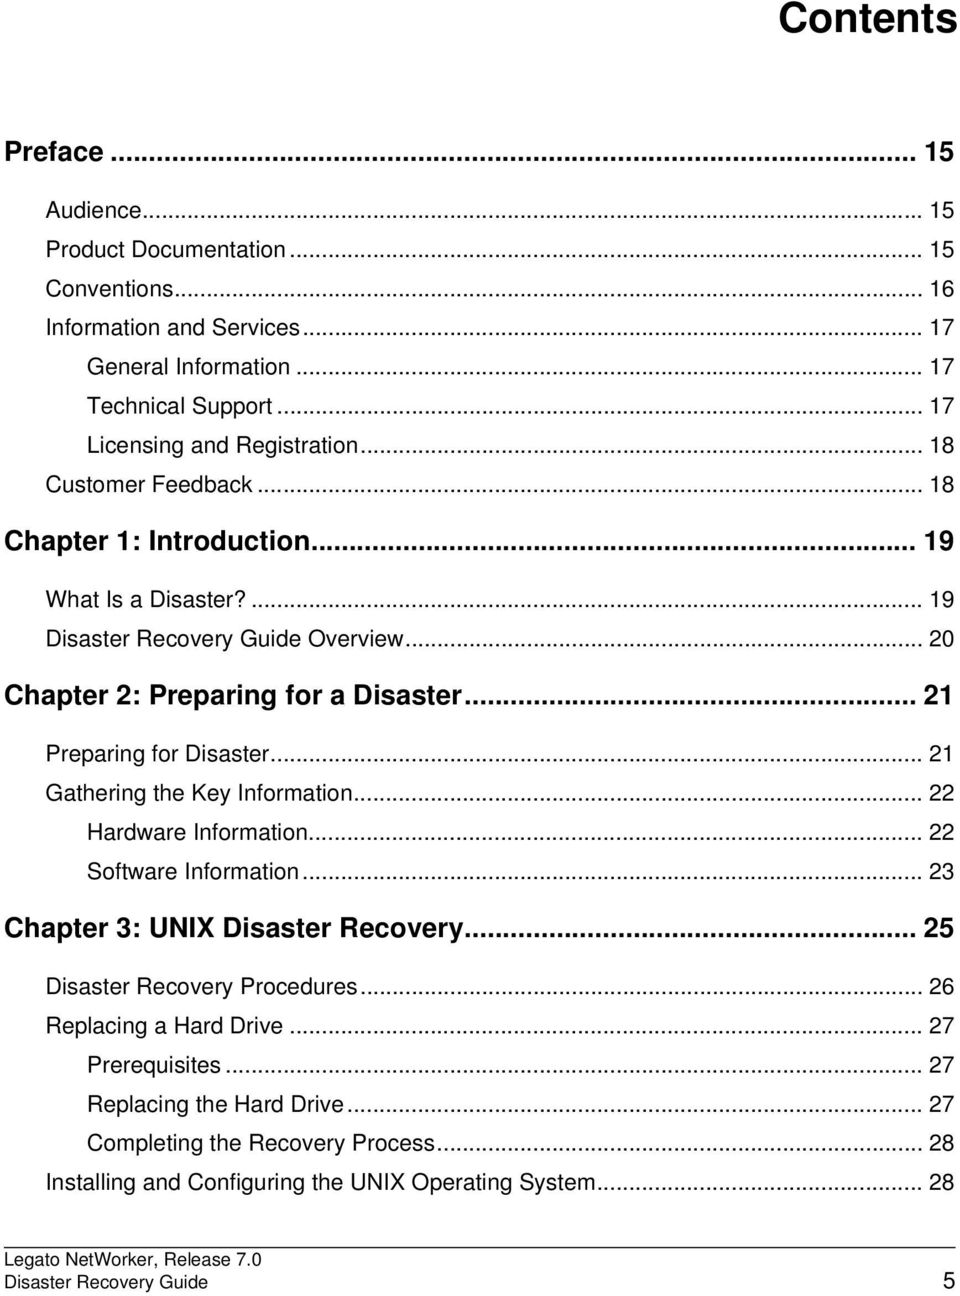 .. 22. Hardware Information... 22. Software Information... 23. Chapter 3: UNIX Disaster Recovery... 25. Disaster Recovery Procedures... 26. Replacing a Hard Drive... 27.